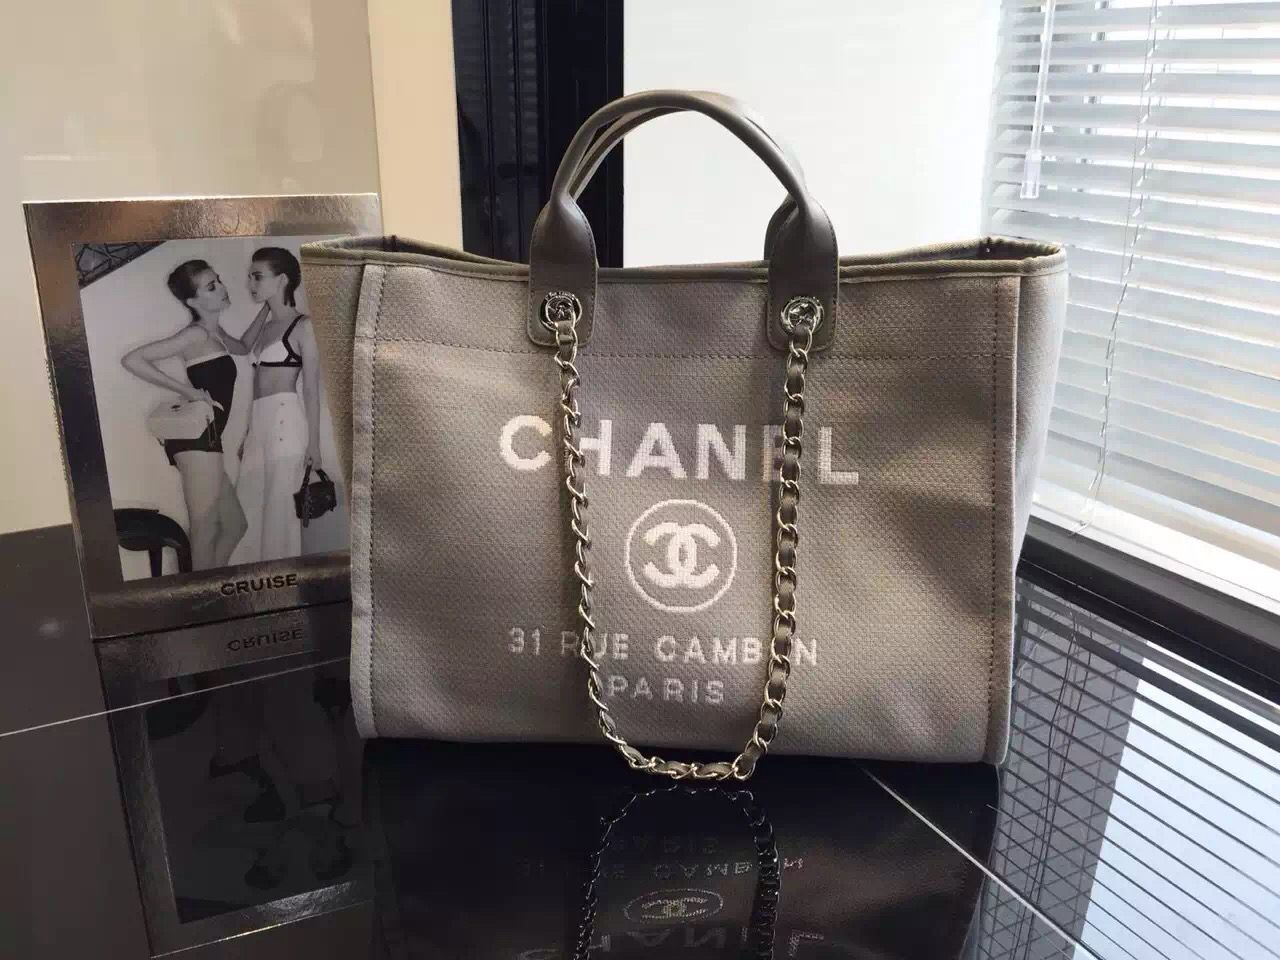 754eb2e9a Chanel Toile Deauville Canvas Shopping Tote Bag 2015-2016 Collection ...